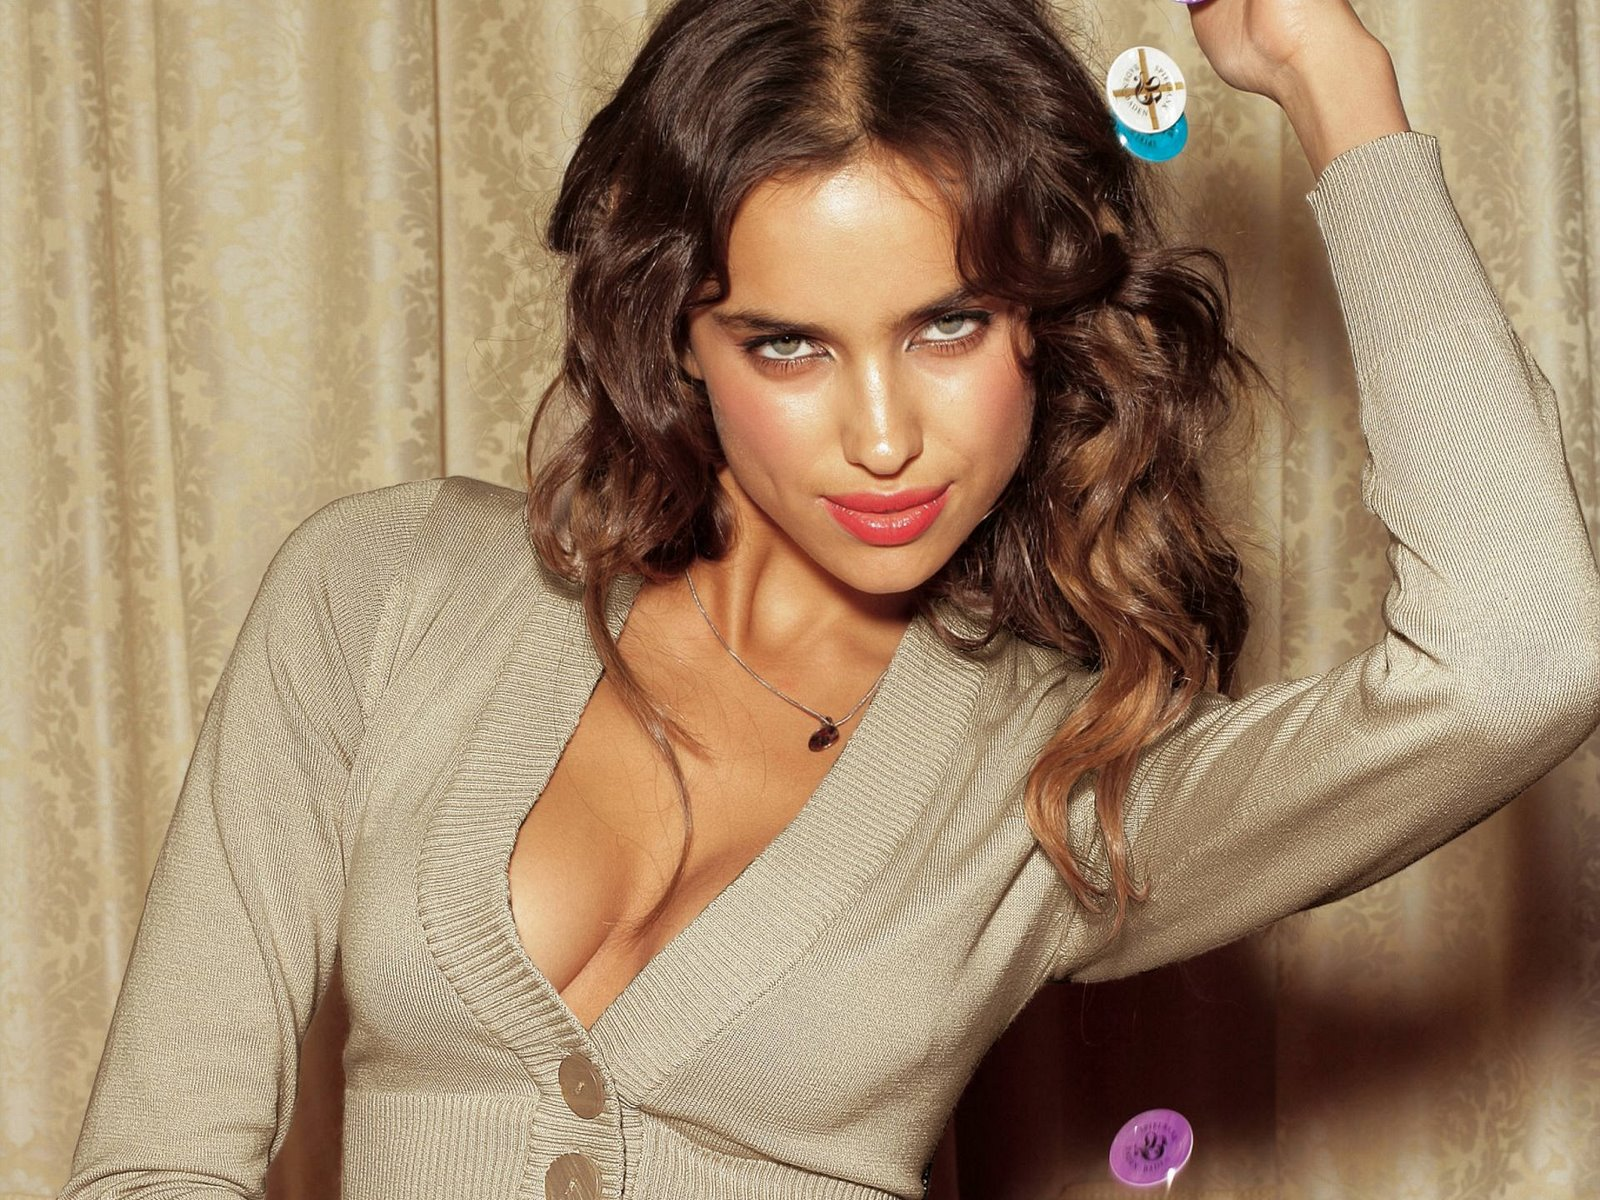 http://3.bp.blogspot.com/-5bTpRl0HkT4/Tg2CcaISkSI/AAAAAAAAPV0/DSwTVGP81-Q/s1600/irina+Shayk+photos+and+wallpapers5.jpg